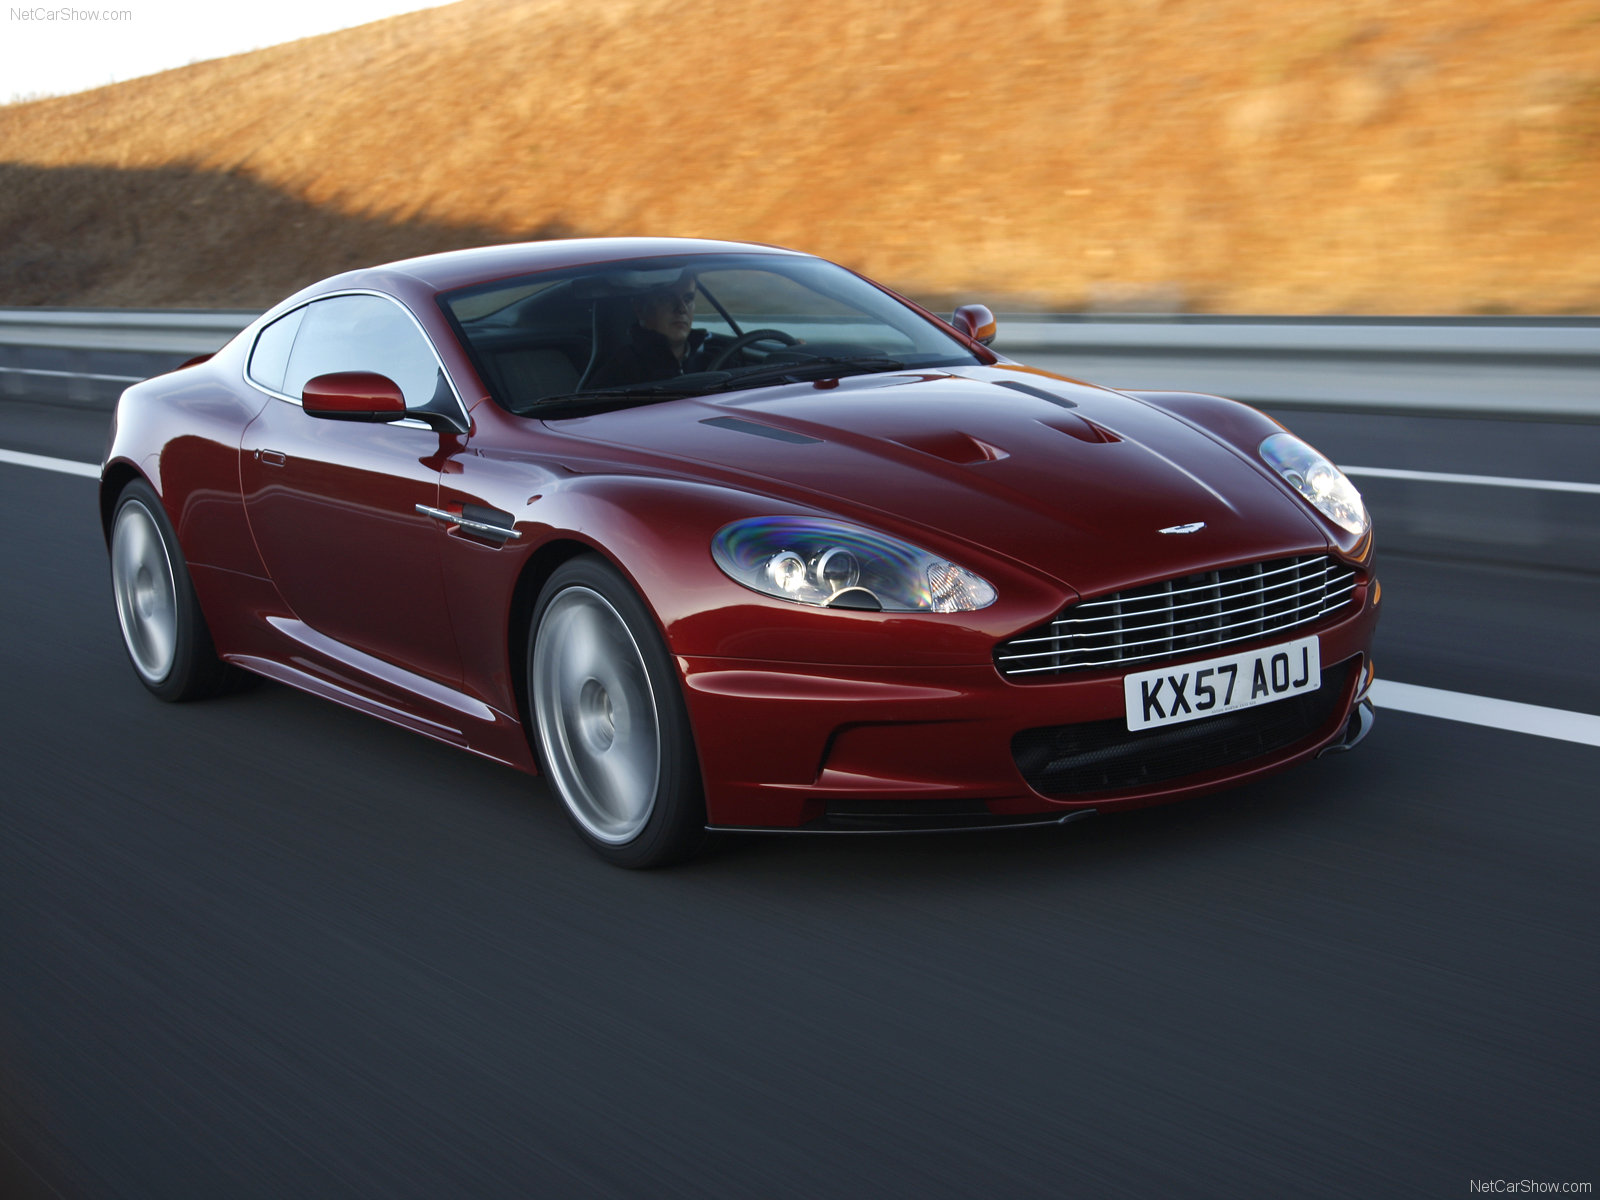 aston martin dbs infa red picture 49777 aston martin photo gallery. Black Bedroom Furniture Sets. Home Design Ideas